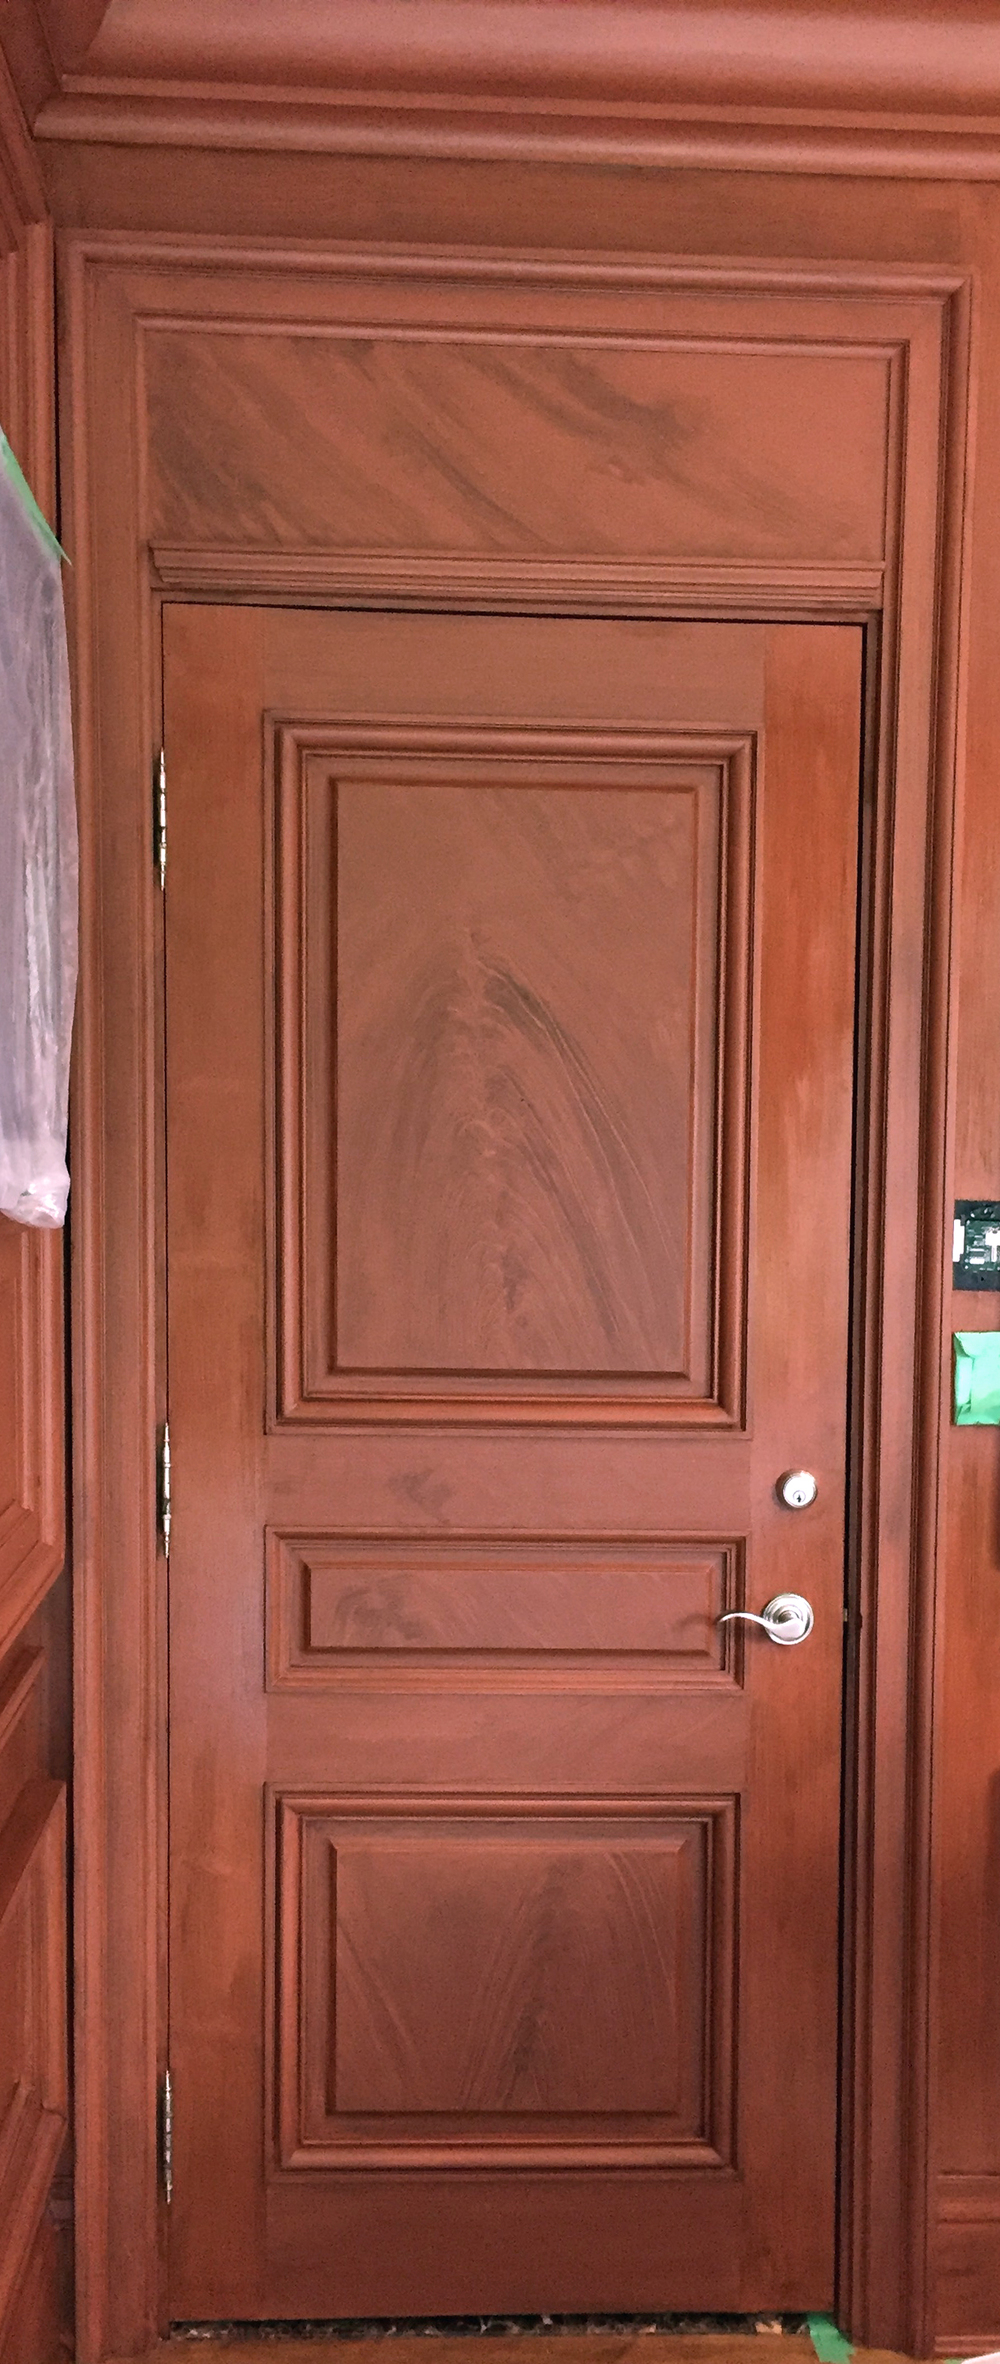 Office door.